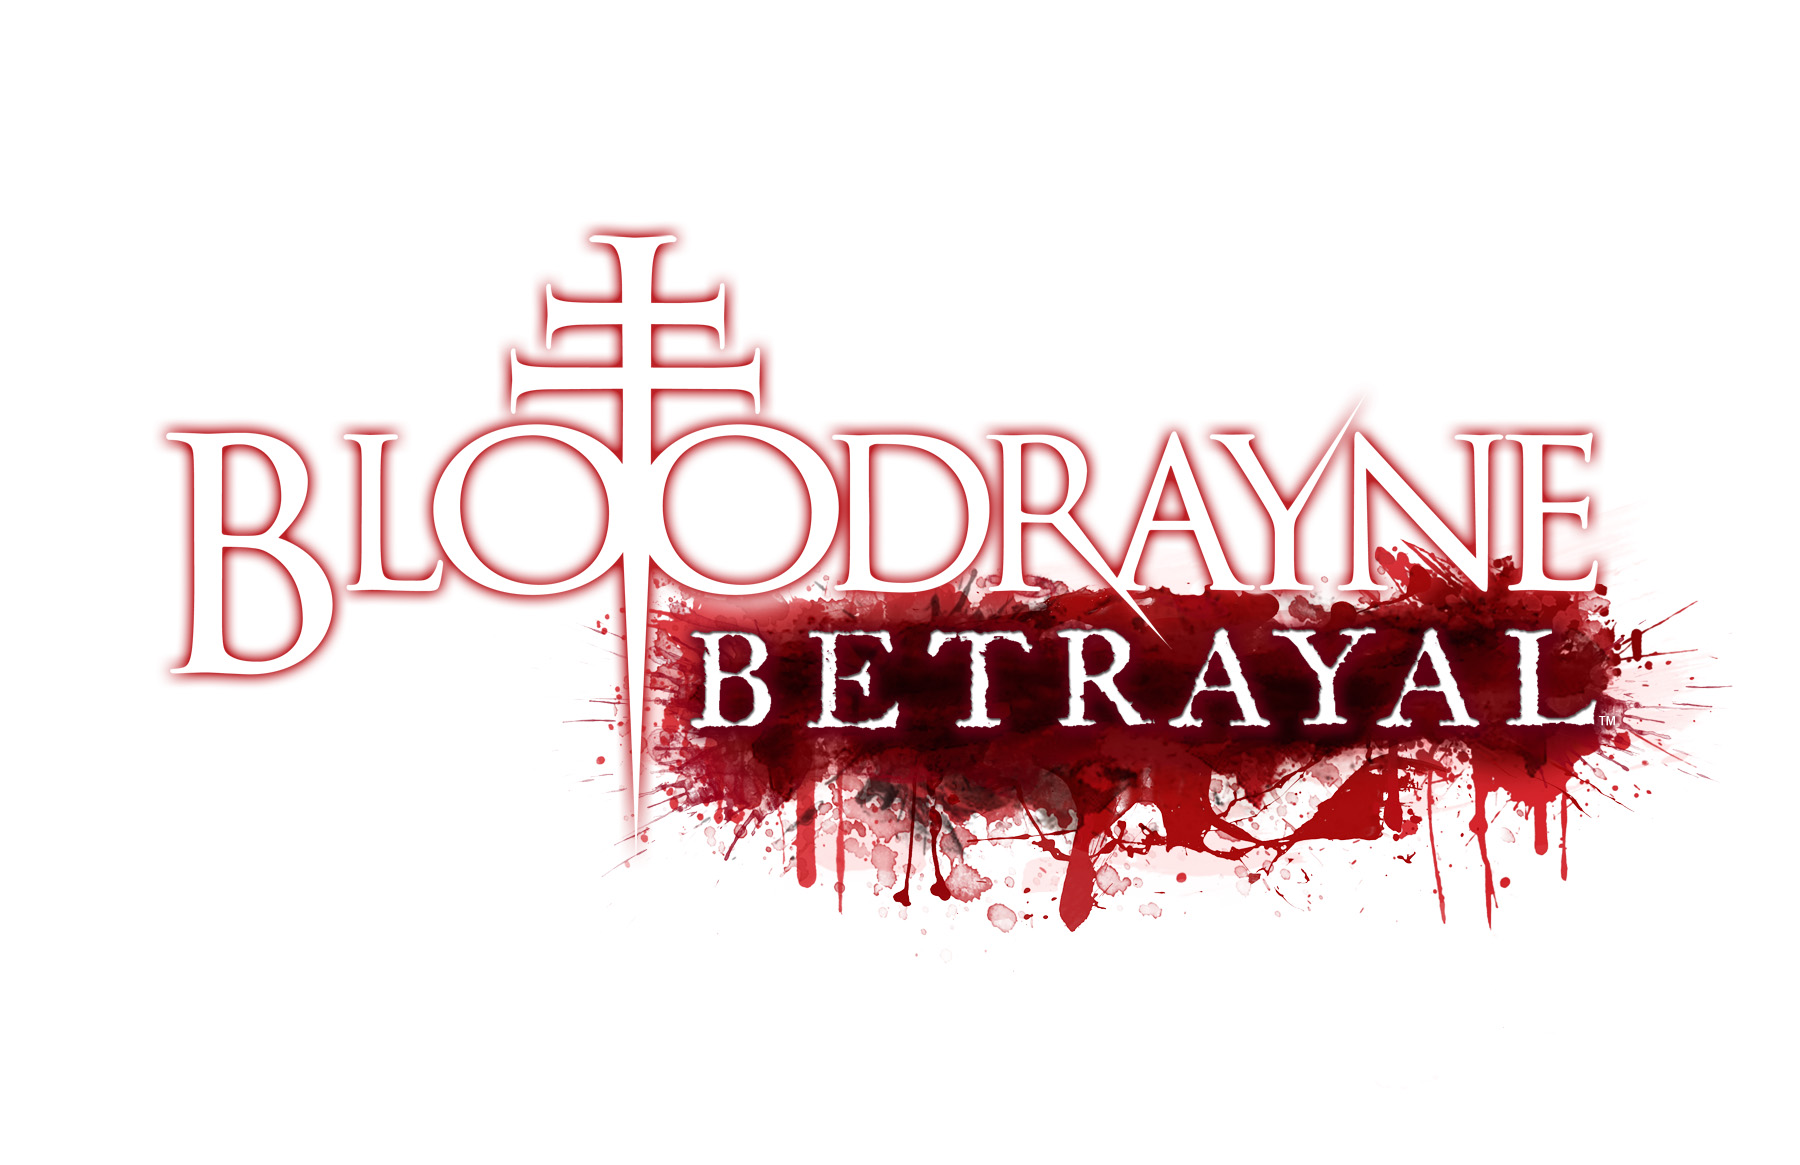 Bloodrayne Betrayal Pc Review Brutal Gamer